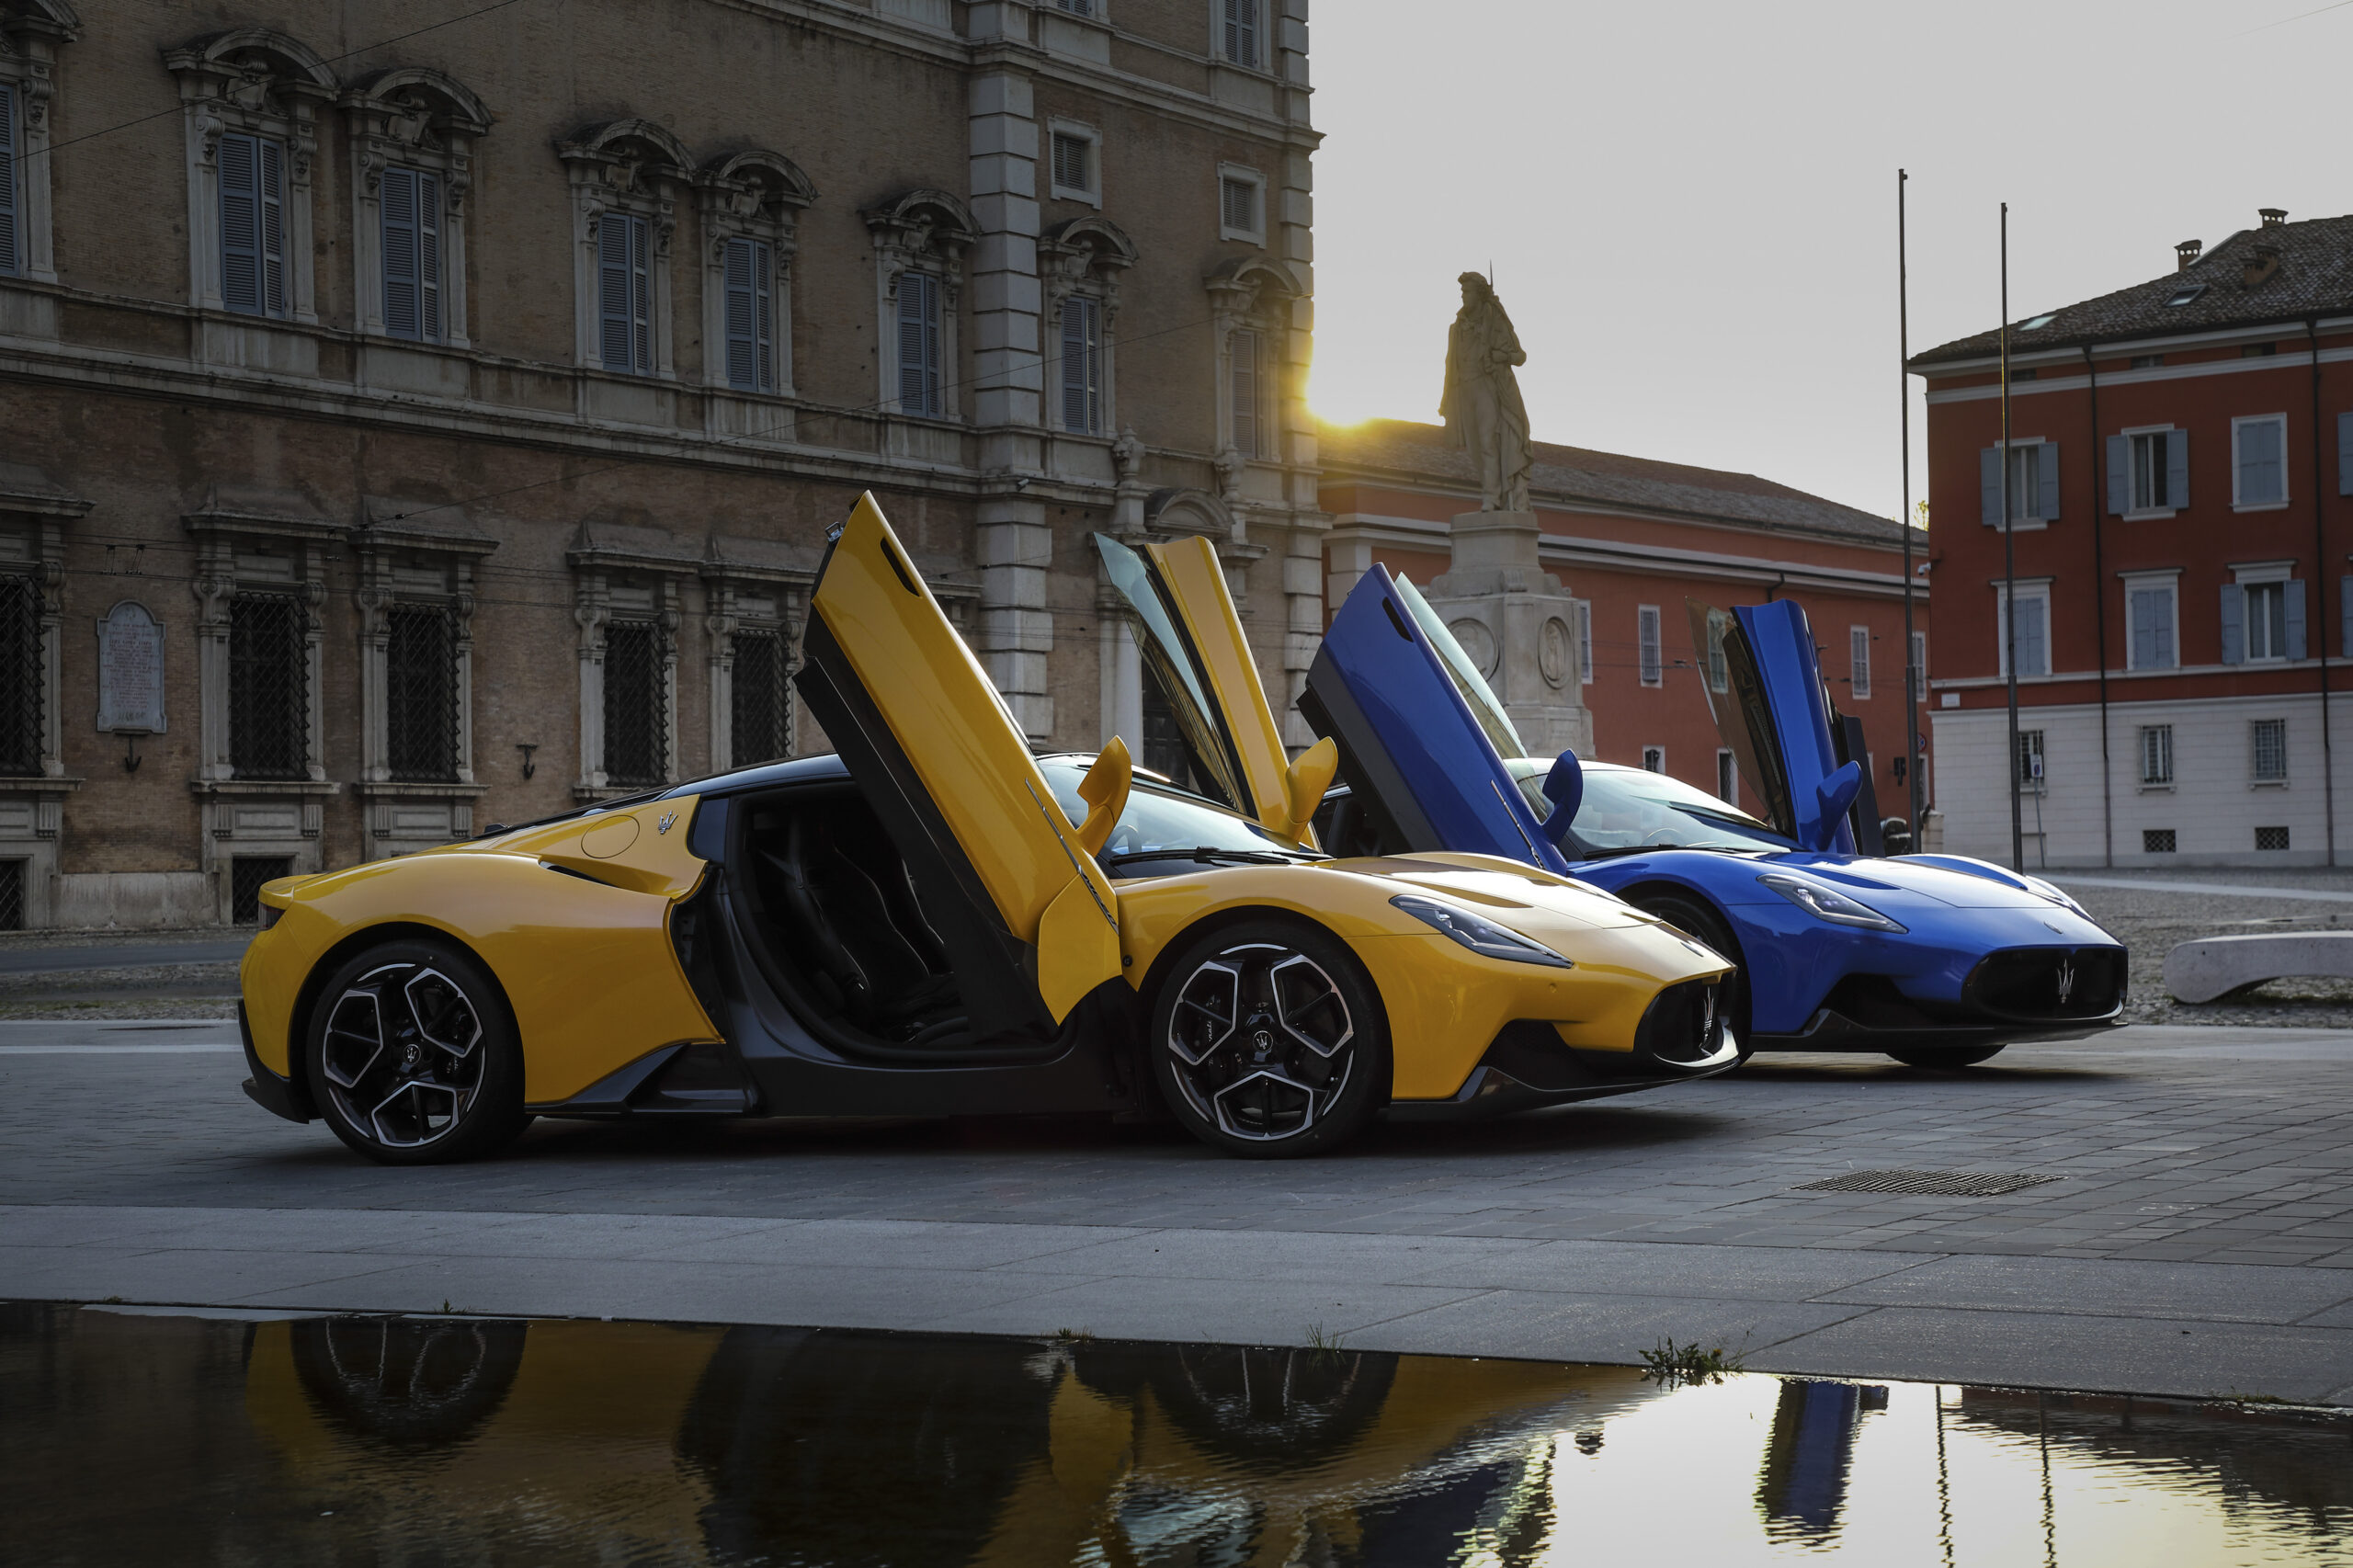 The Maserati MC20 yellow and blue in piazza.